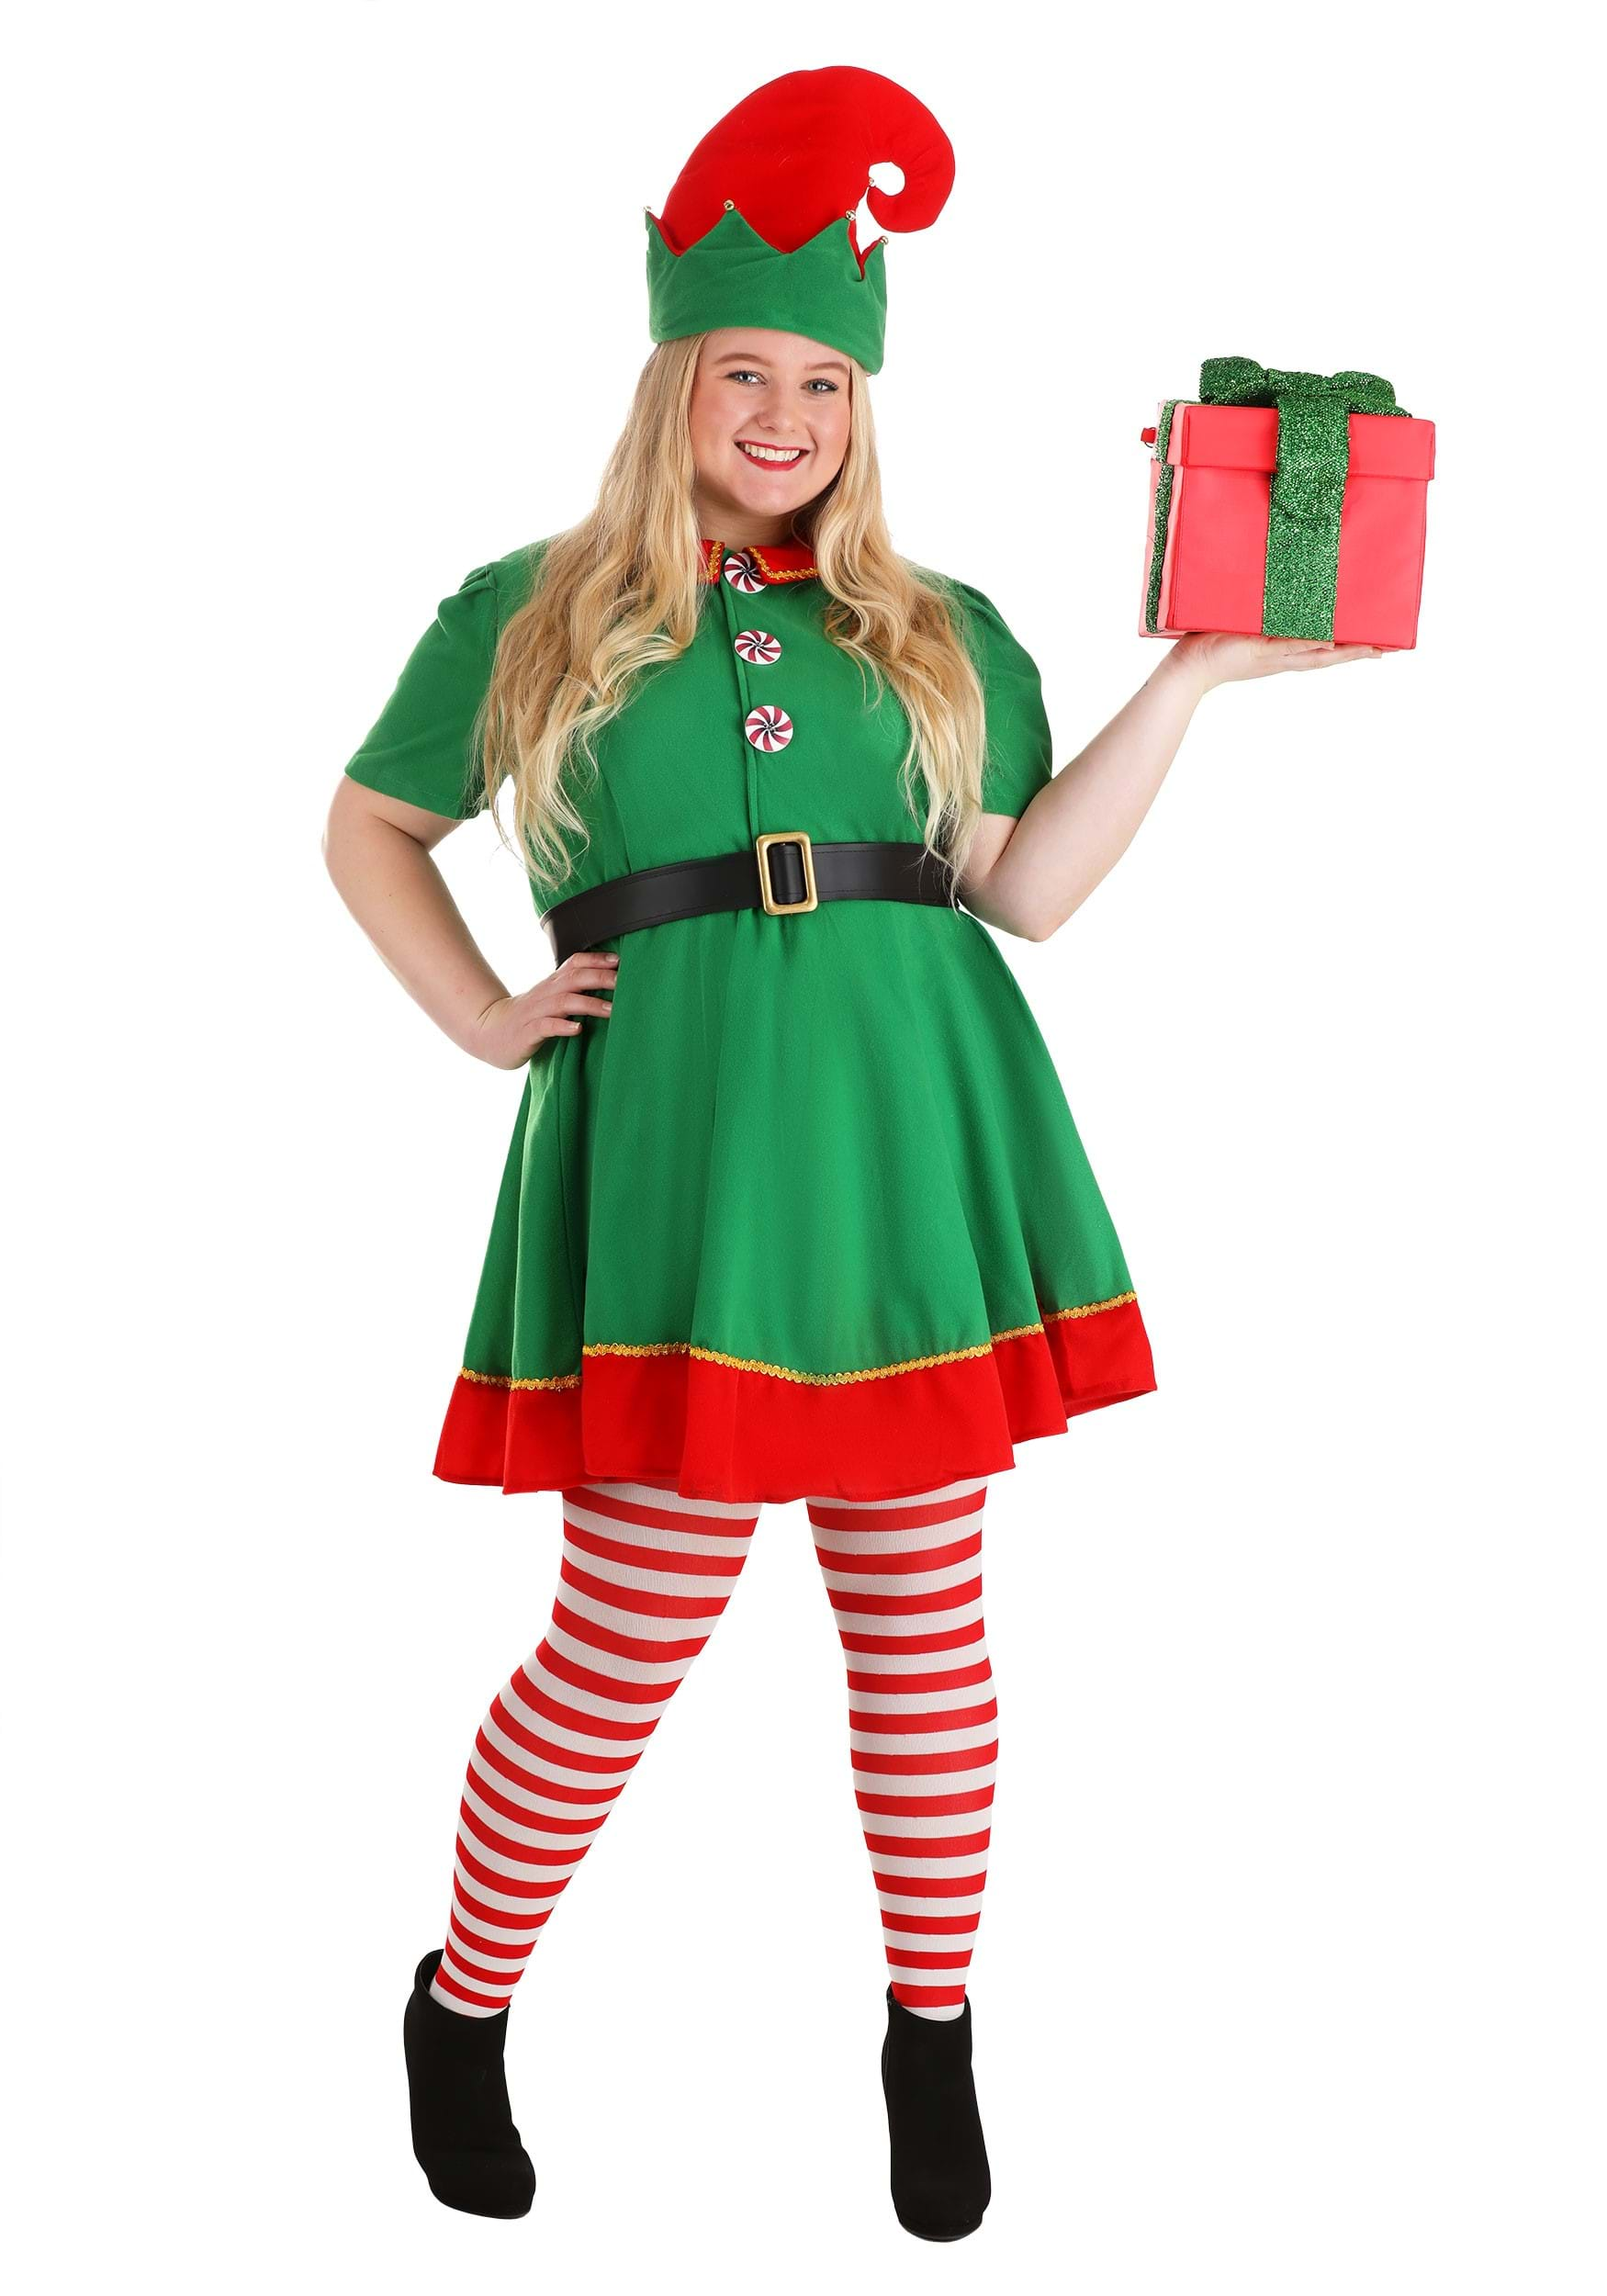 Christmas Elf Costume.Women S Holiday Elf Plus Size Costume